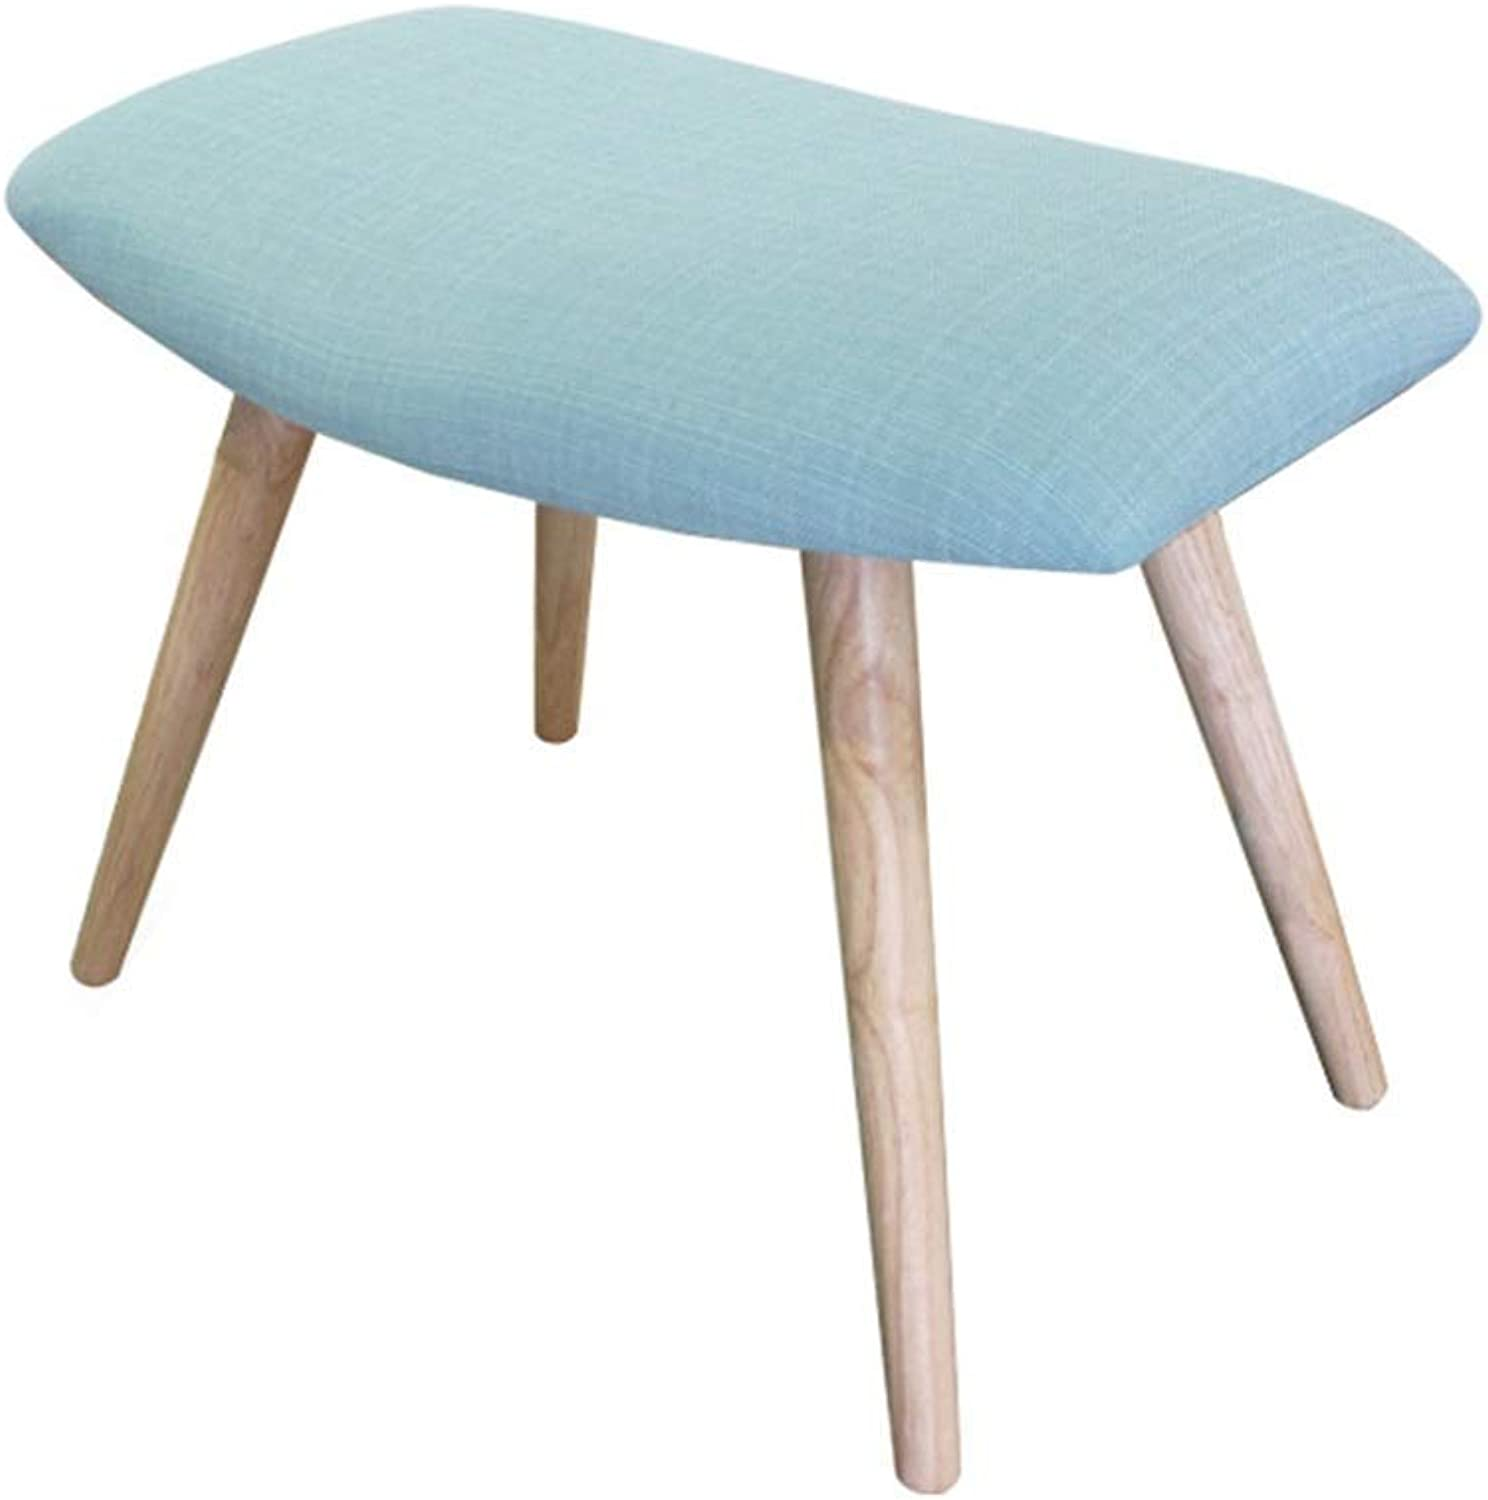 Footstool Premium Quality Comfortable Solid Wood Support Upholstered Footstool Chair Stool Fabric Cover 4Legs for Home & Commercial